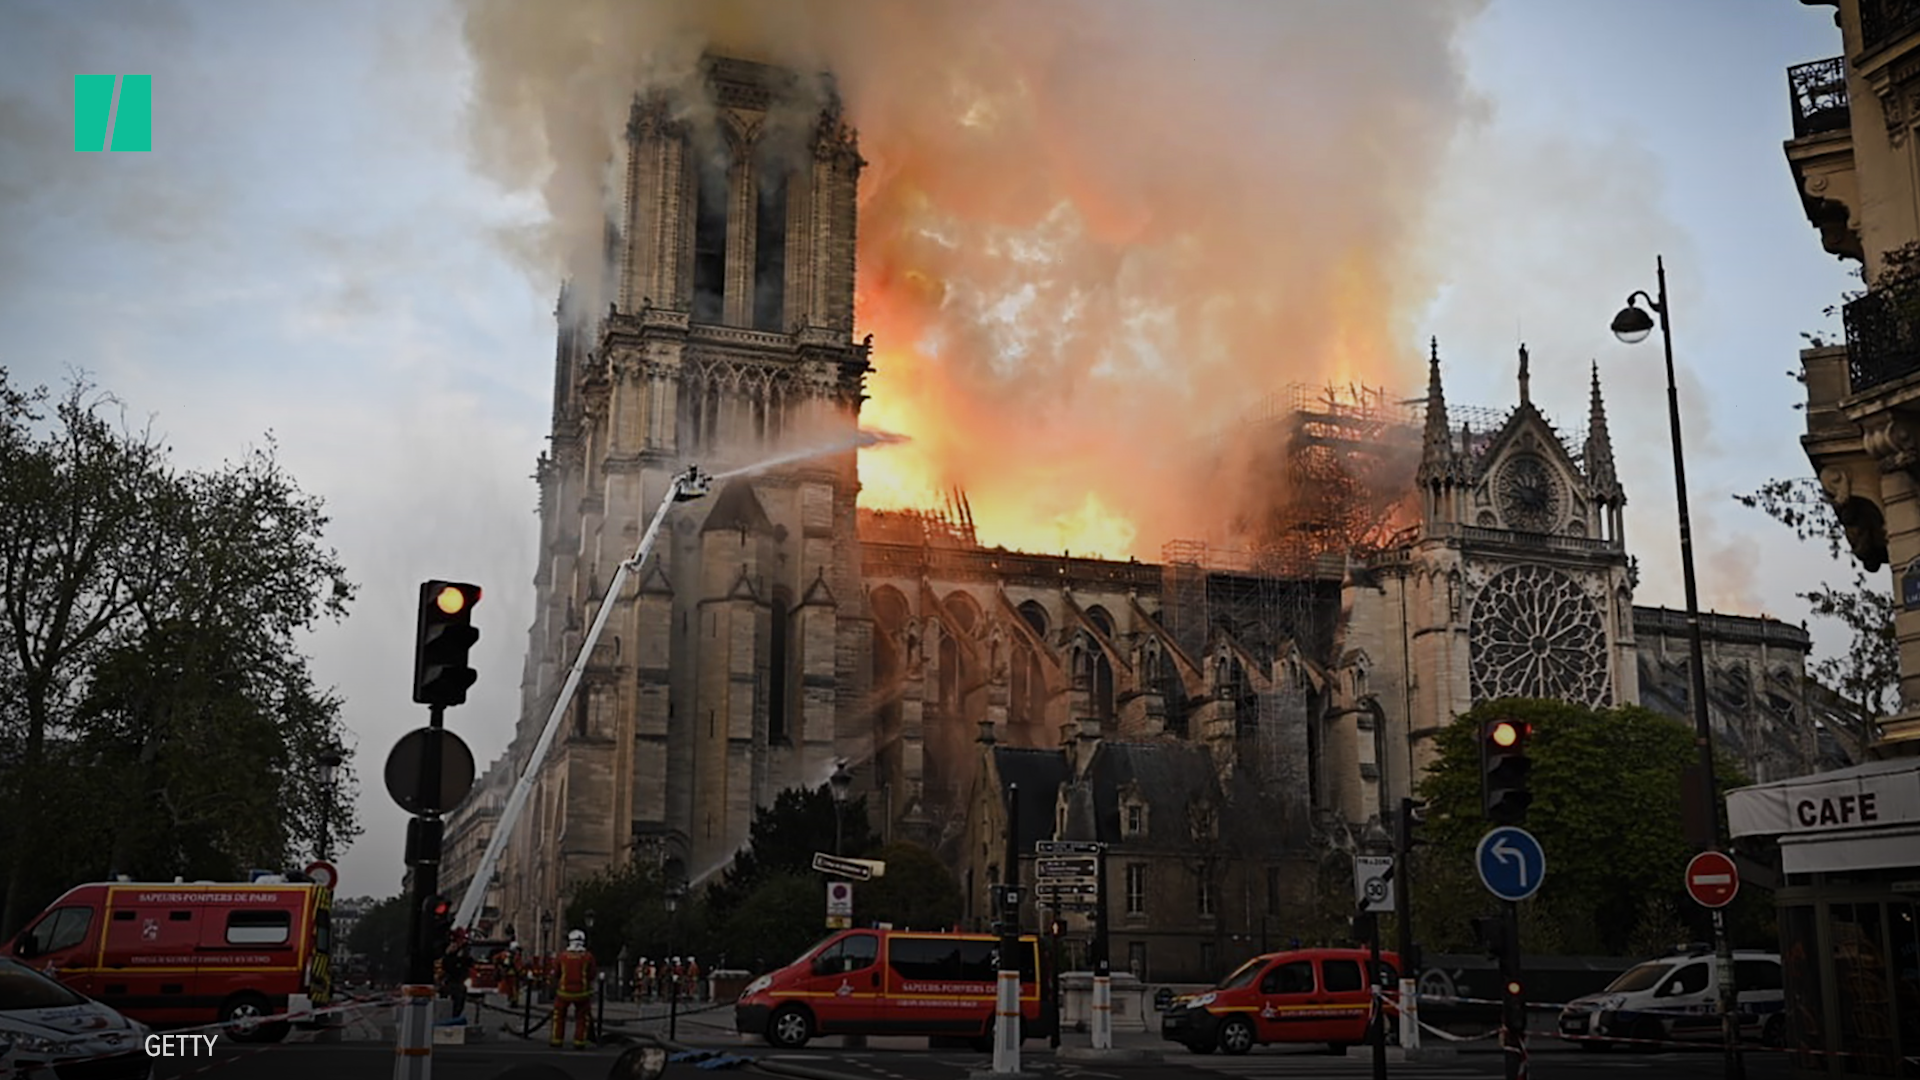 YouTube And Google Algorithms Promoted Notre Dame Conspiracy Theories